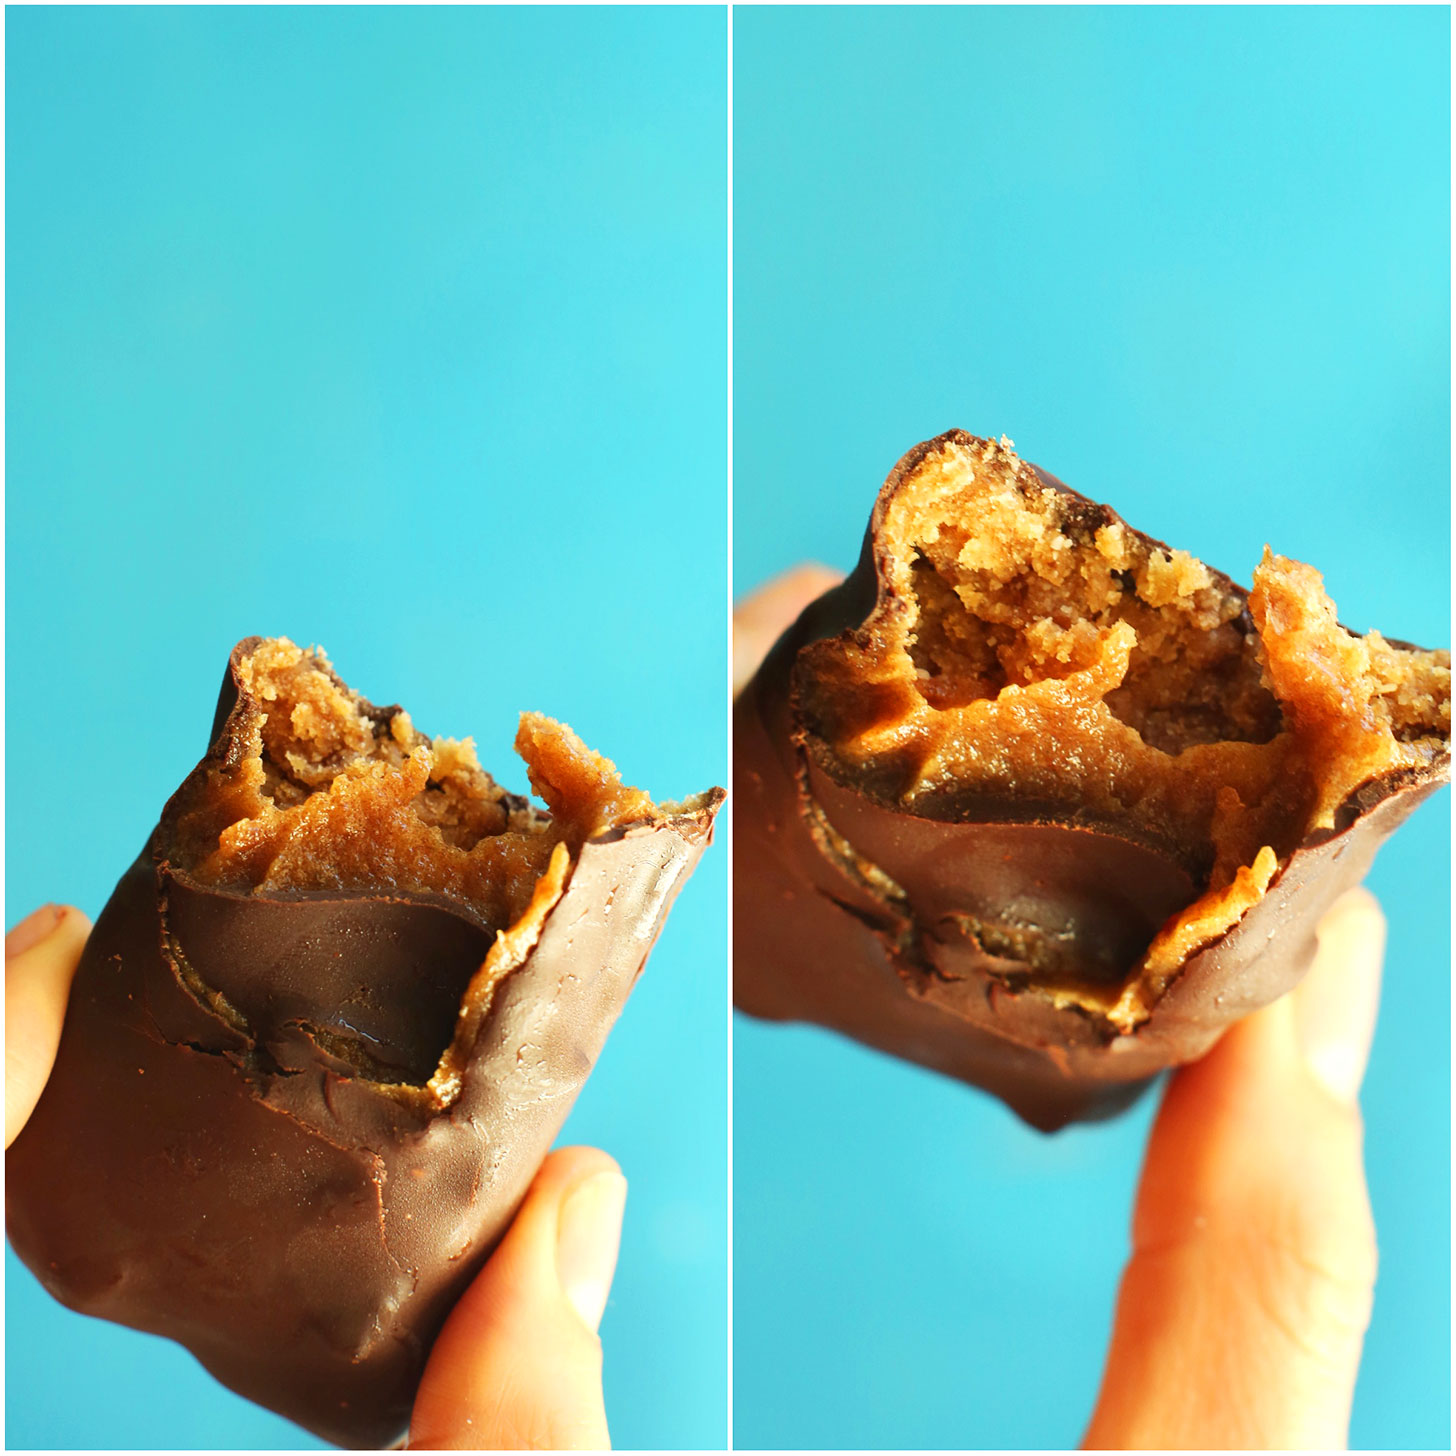 Showing the chewy inside of our Easy gluten-free Vegan Milky Ways